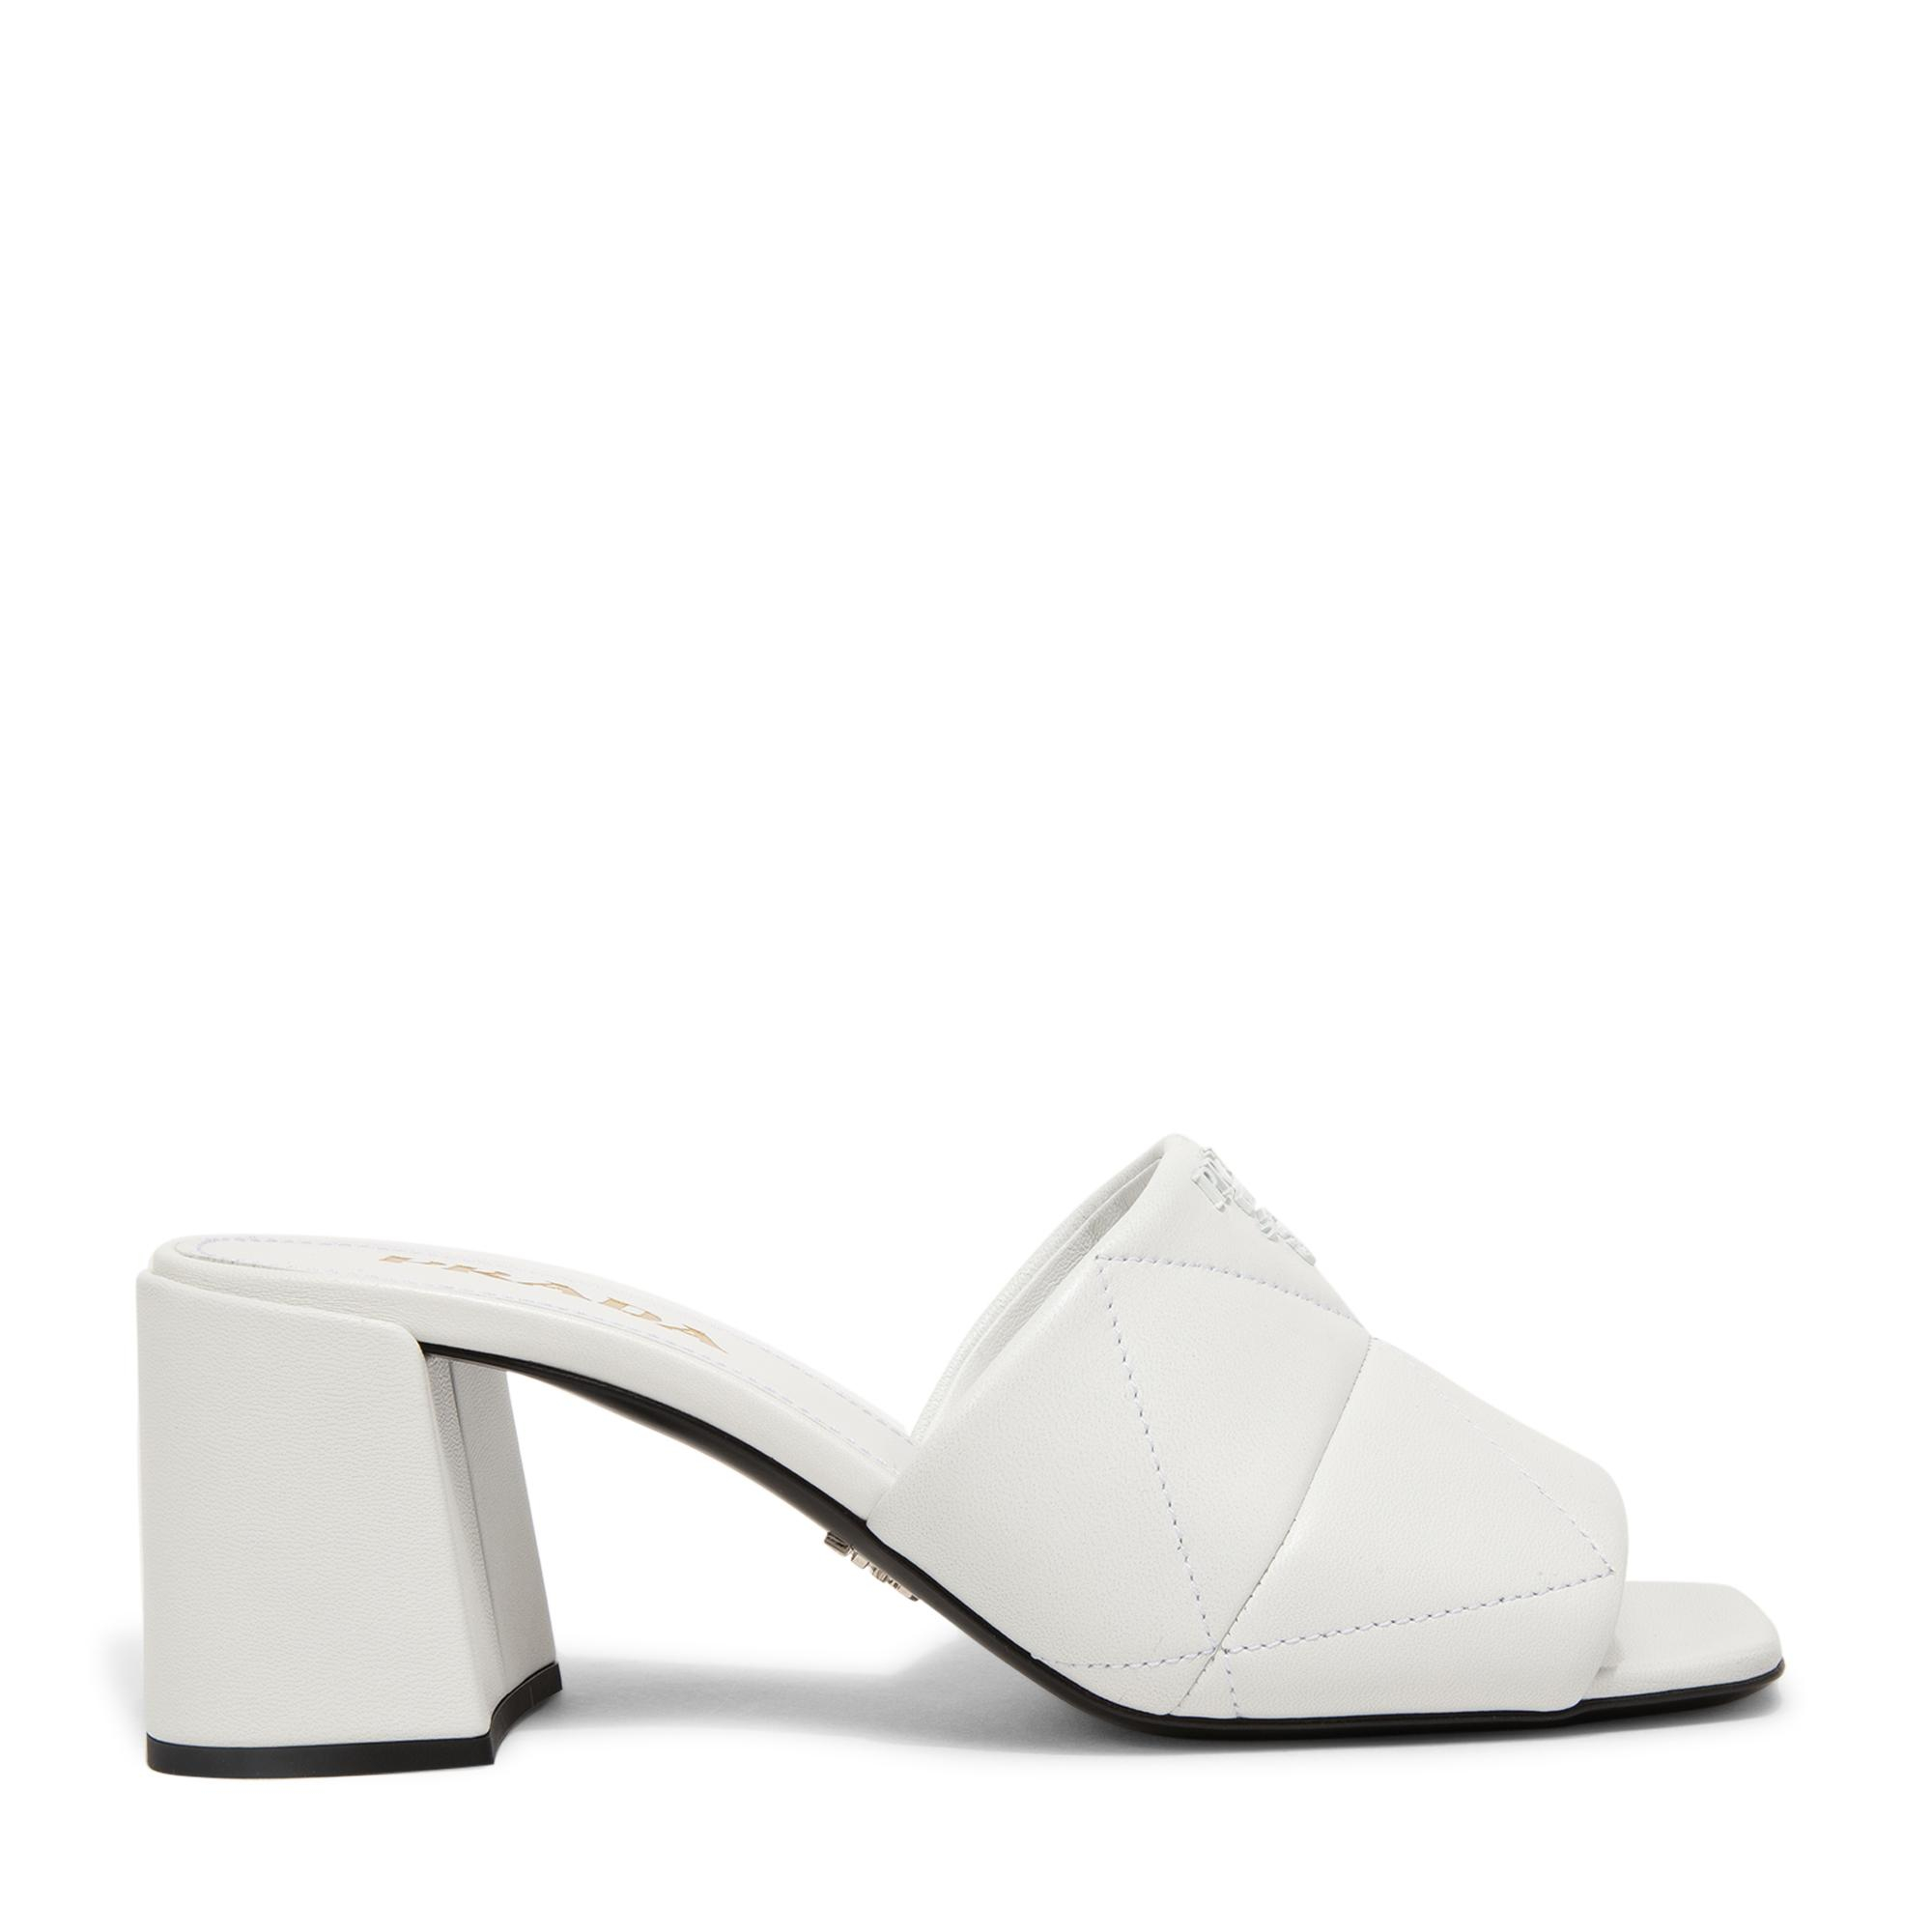 Quilted nappa leather sandals